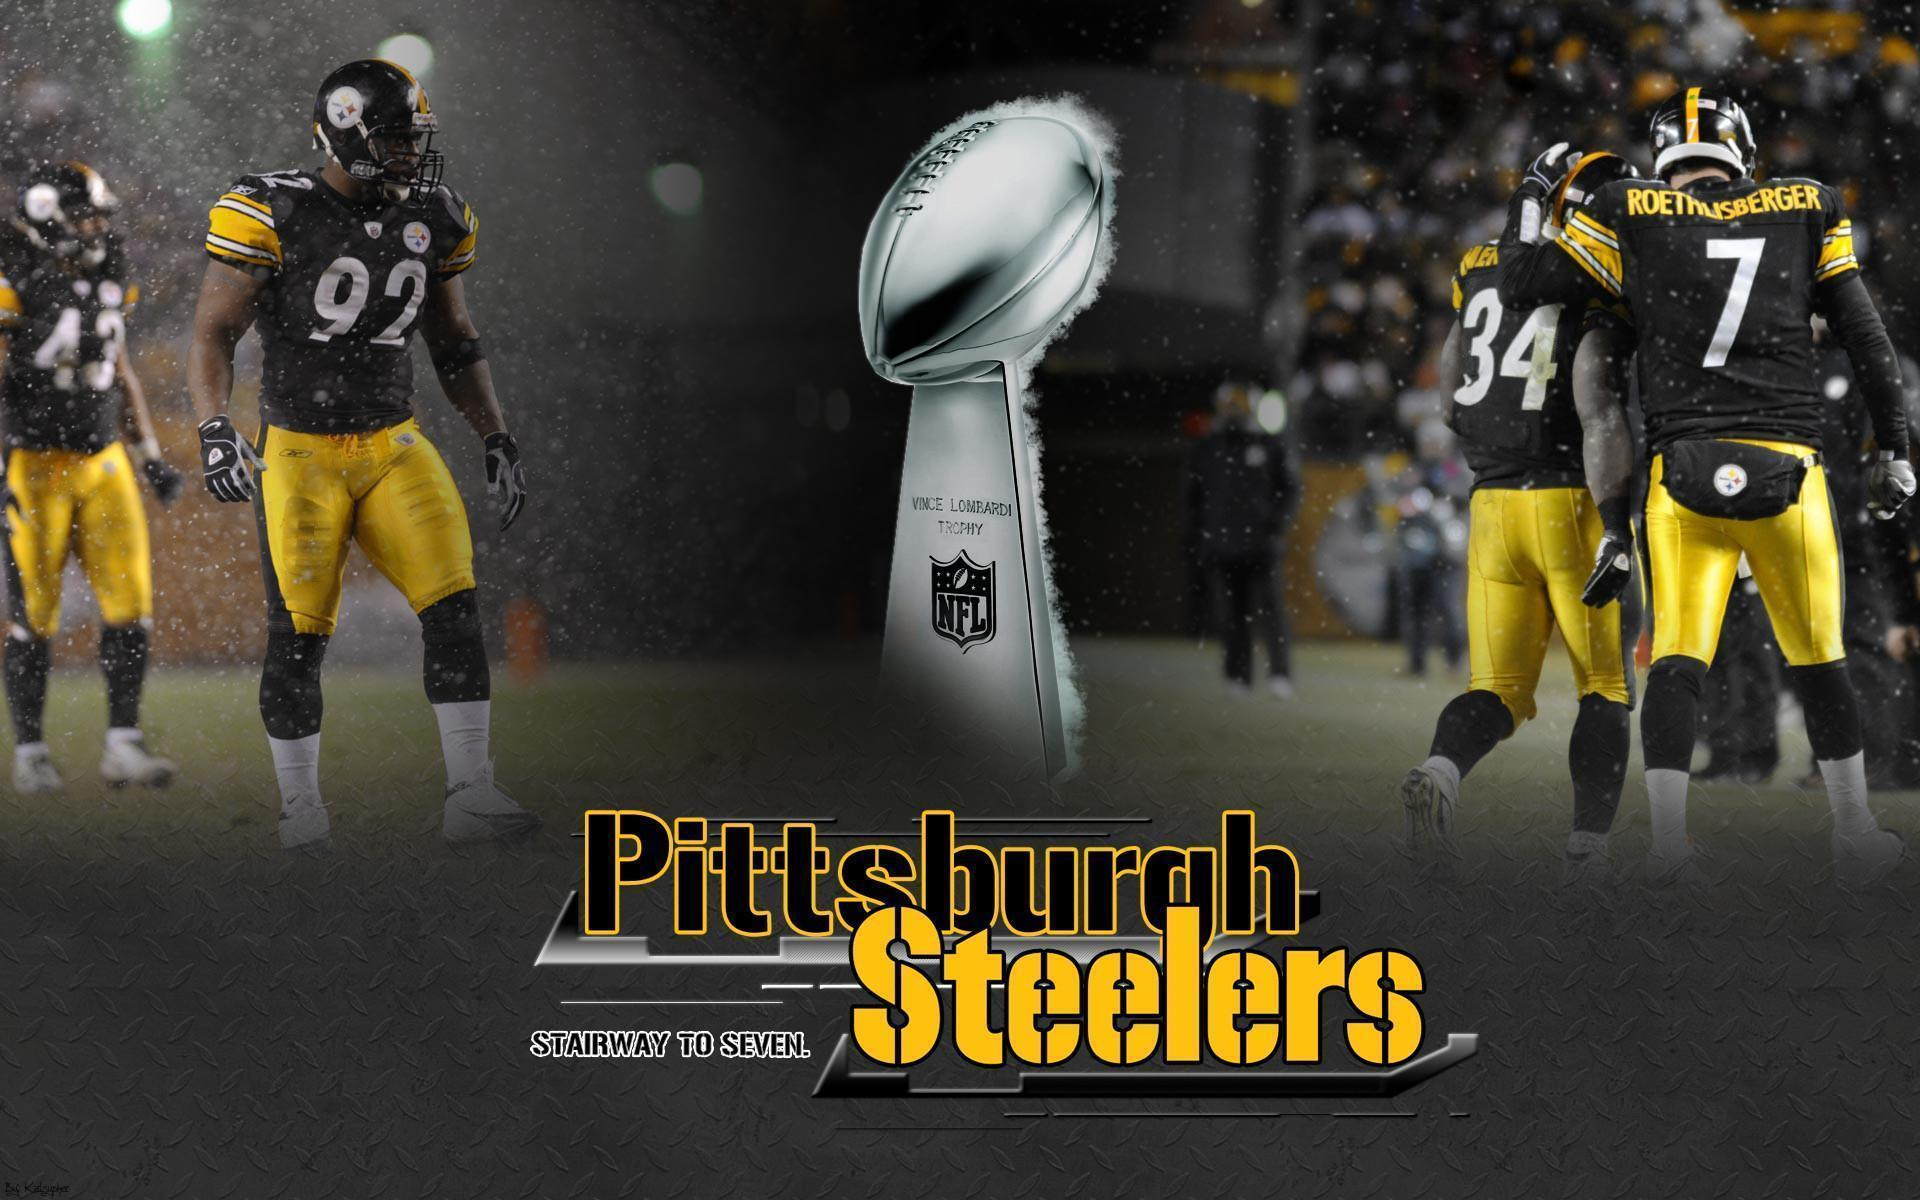 Wallpapers Of The Day Pittsburgh Steelers Wallpapers Pittsburgh